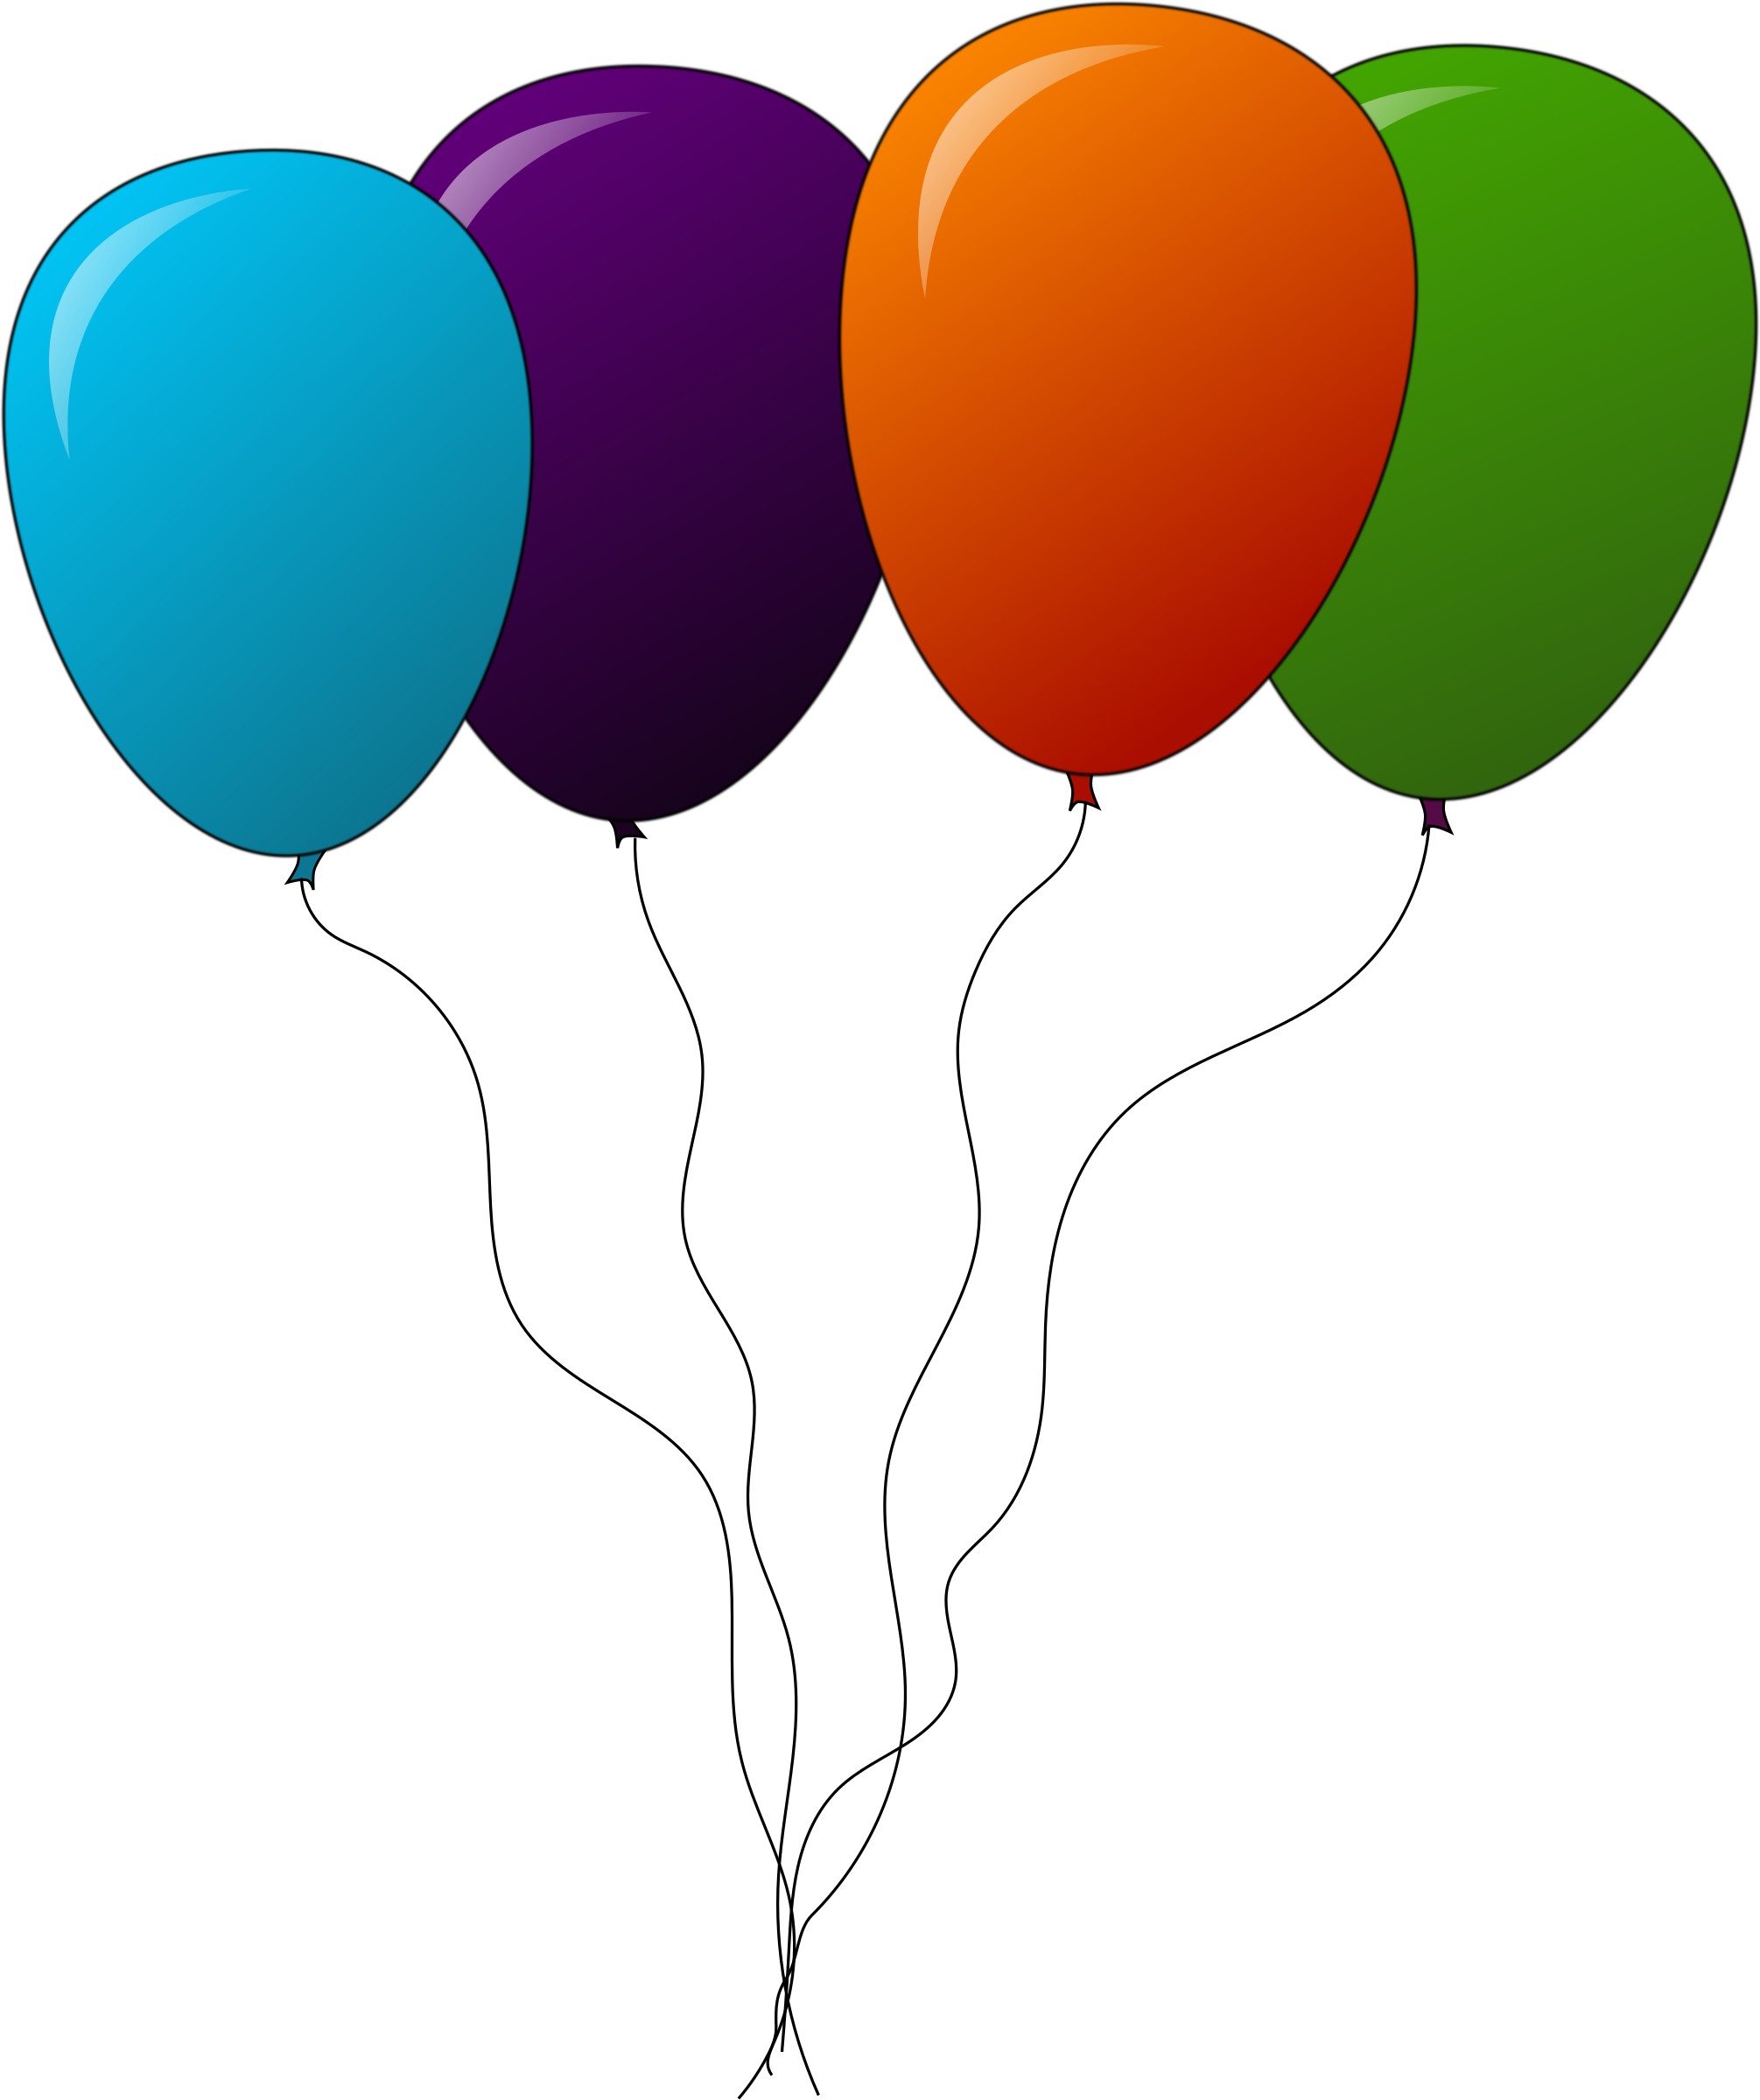 Other clipart colourful balloon. Colored balloons big image